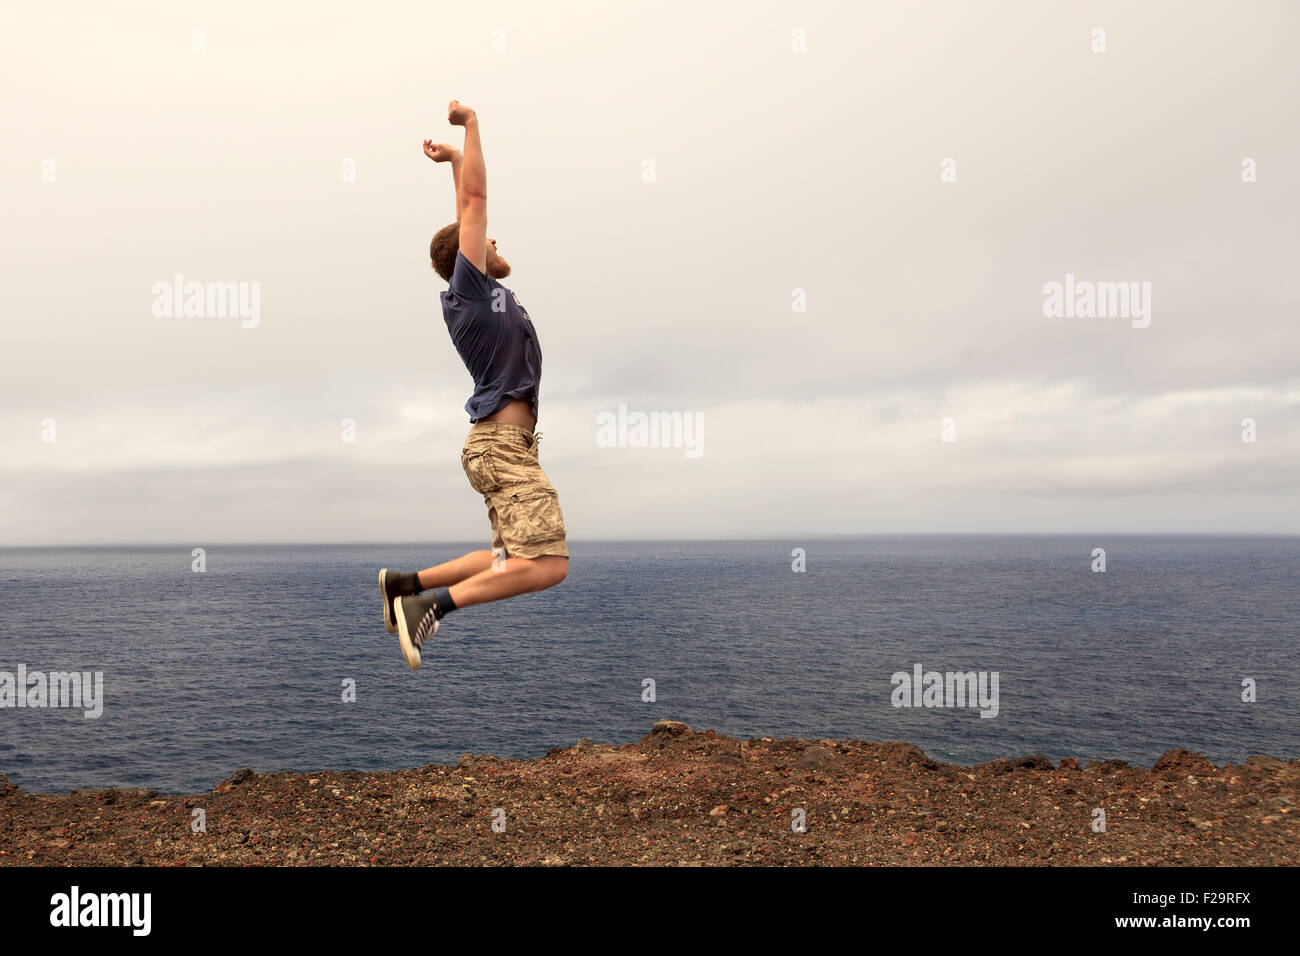 Success or win concept - joyful man jumping outdoor - Stock Image